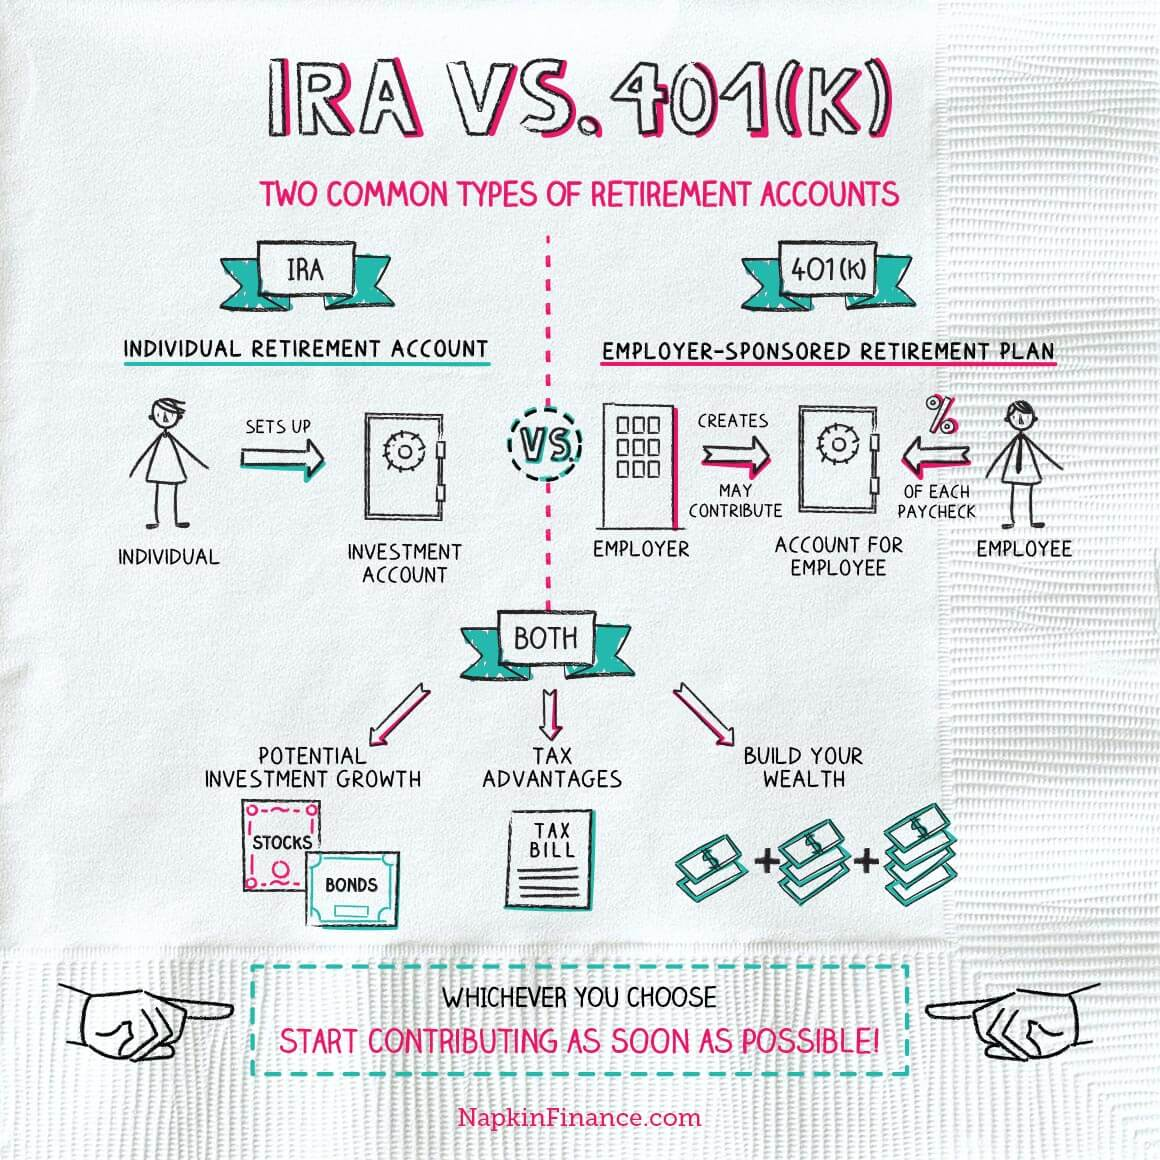 Funding 401ks And Roth Iras Worksheet Answers